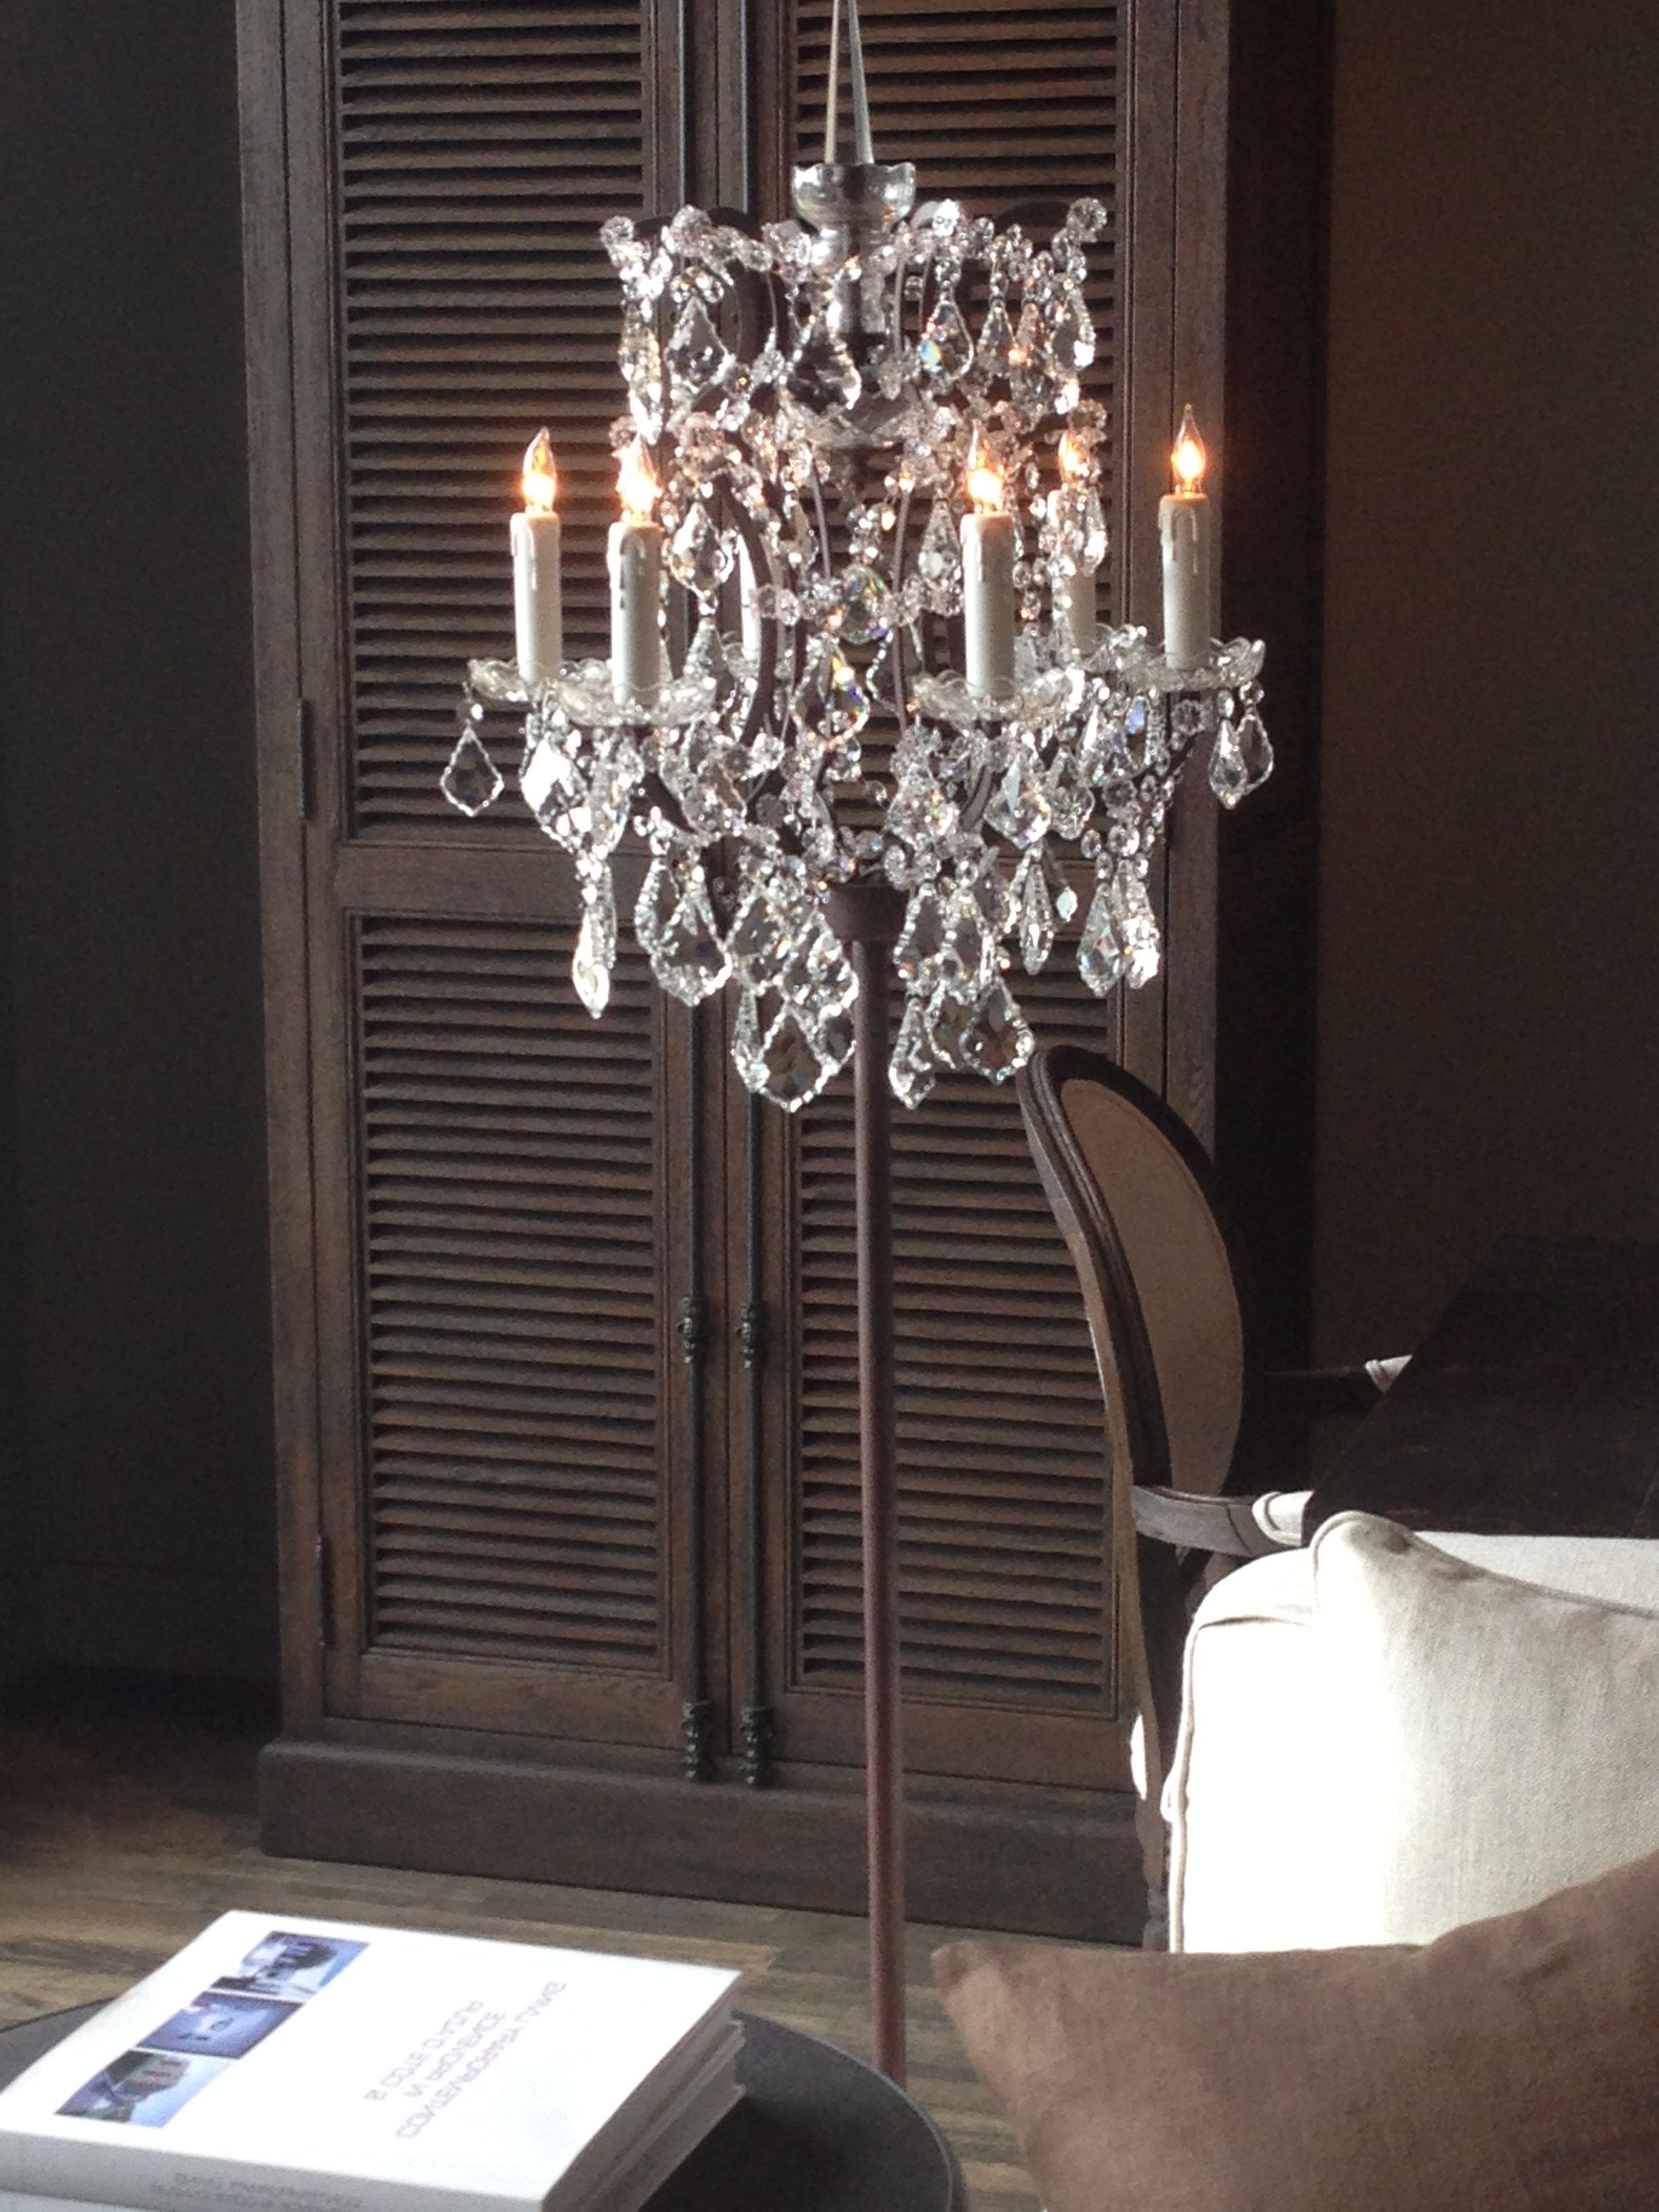 Widely Used Tall Standing Chandelier Lamps Within Chandelier Floor Lamp; I Own This Floor Lamp And It Is So Beautiful (View 20 of 20)